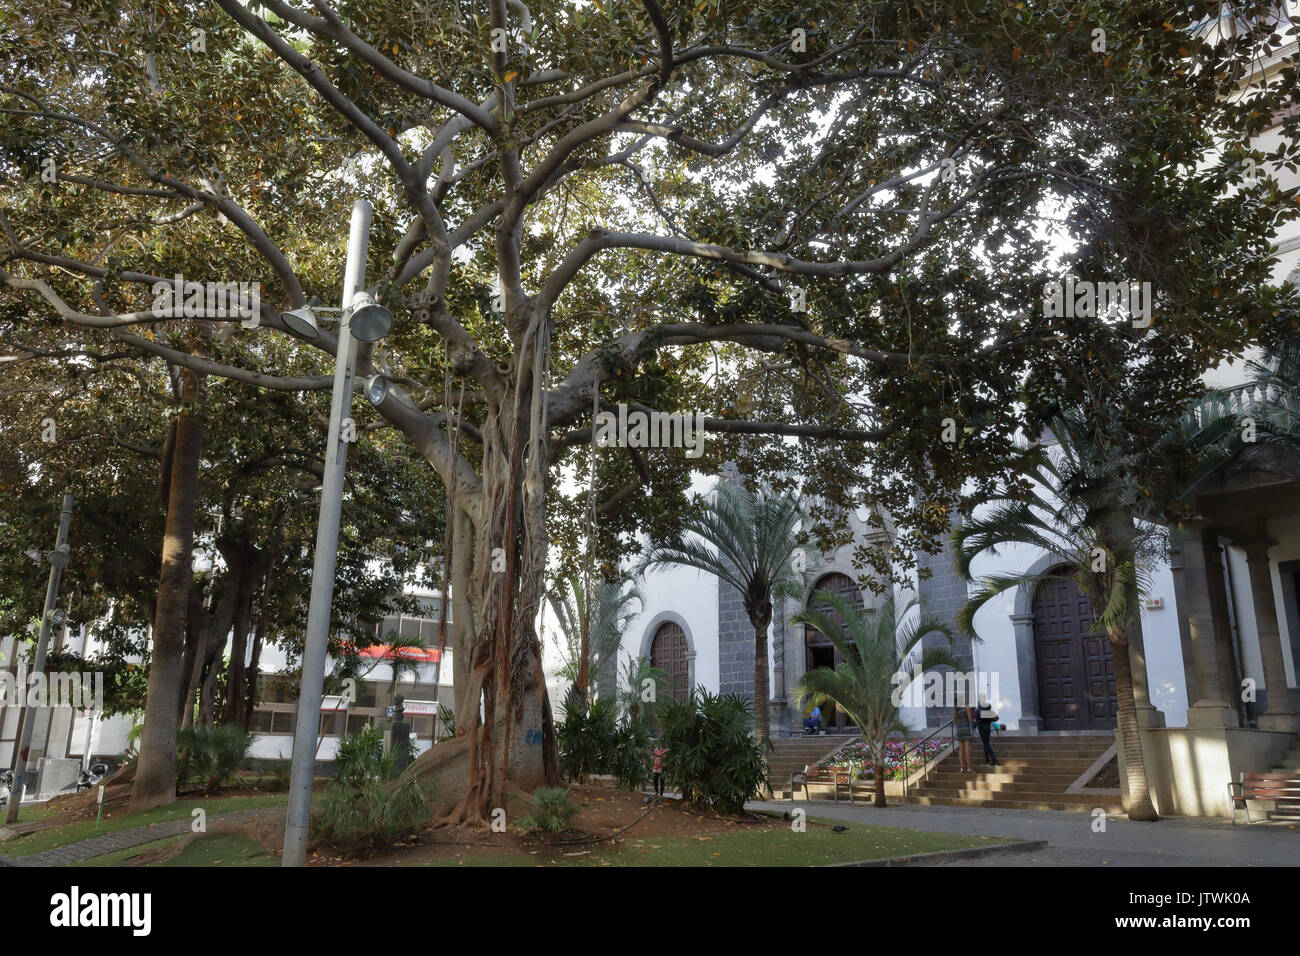 St. Francis square and its centuries-old trees in Santa Cruz de Tenerife, Spain Stock Photo